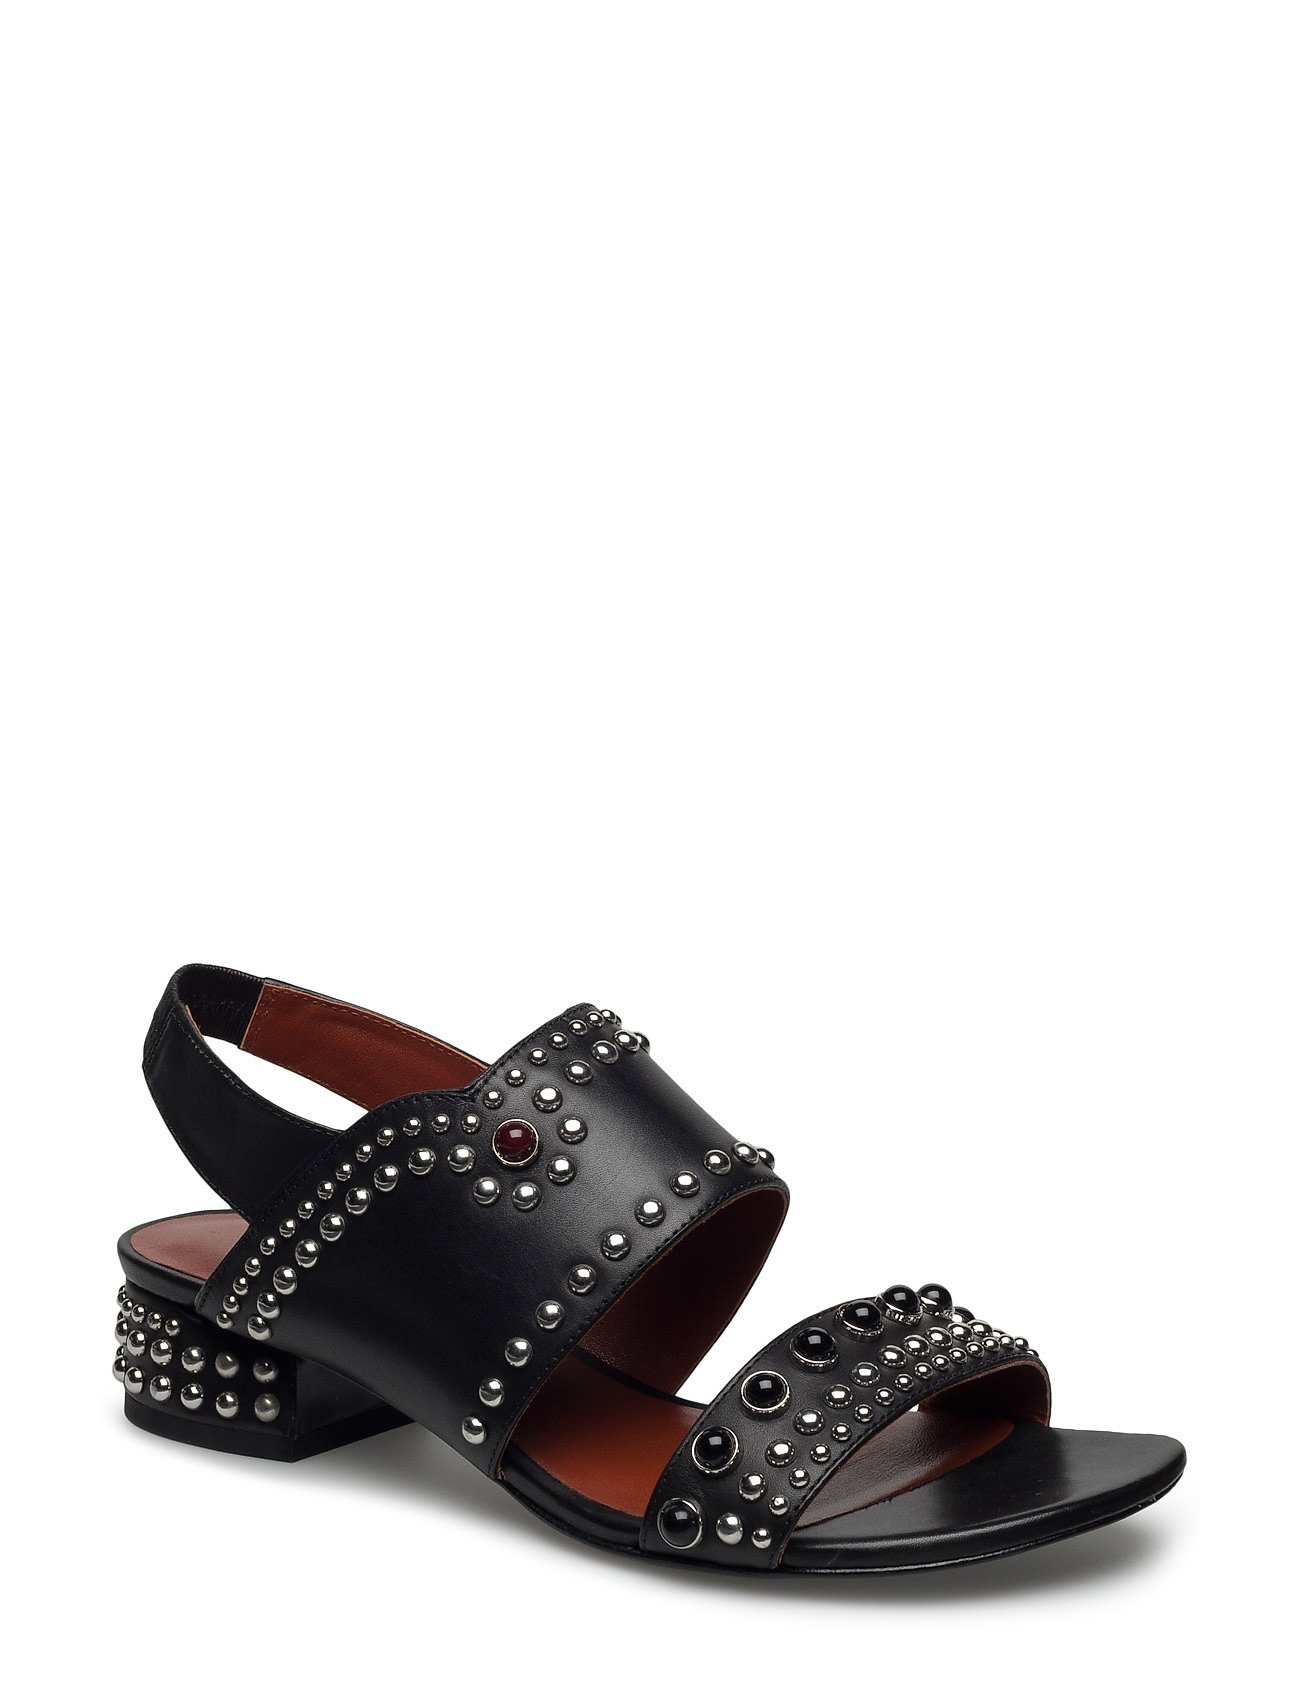 3.1 Phillip Lim DRUM- 30 SANDAL